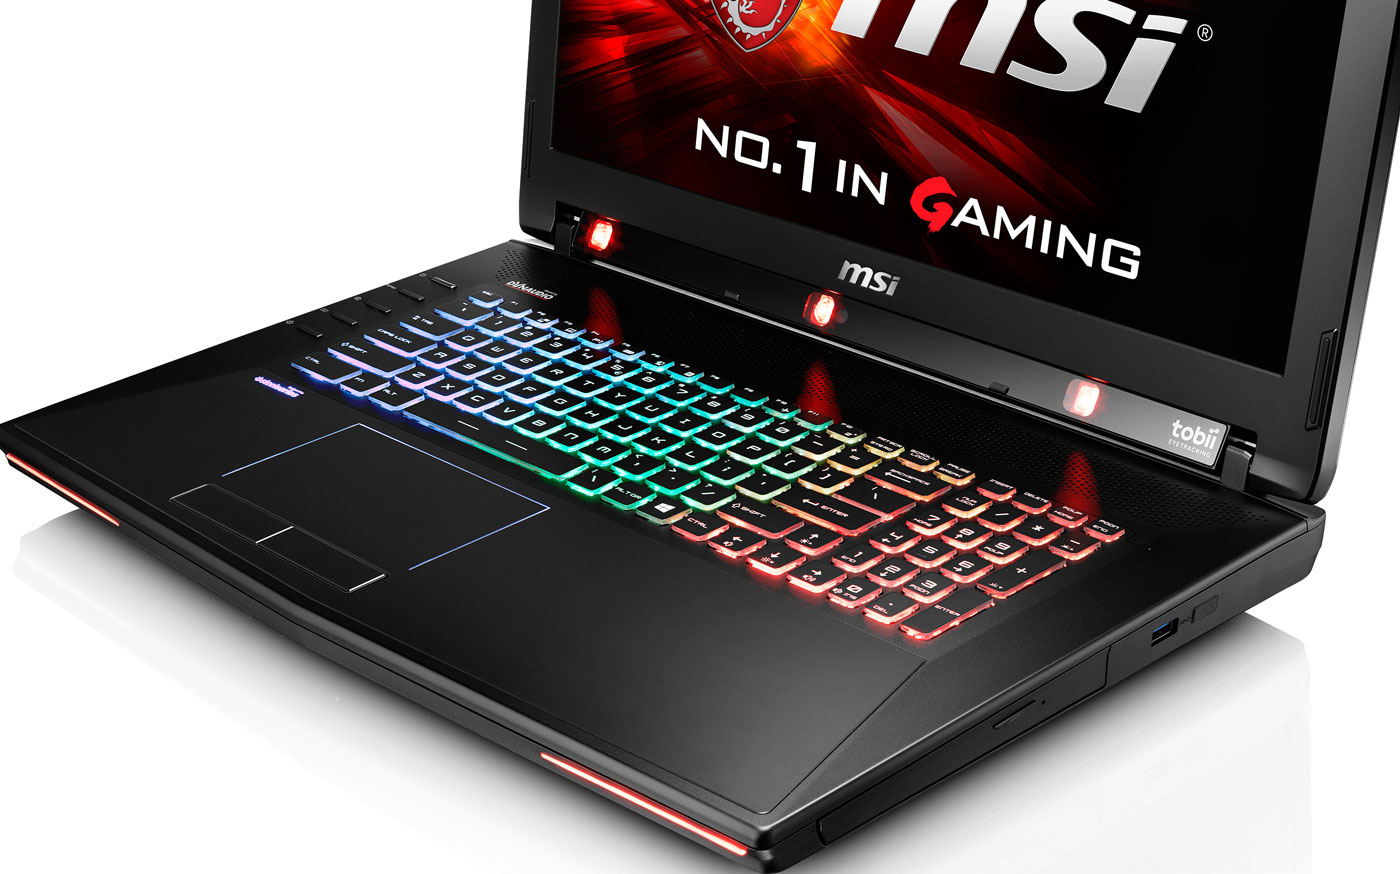 MSI GS70 - World's thinnest and lightest 17-inch gaming laptop ...